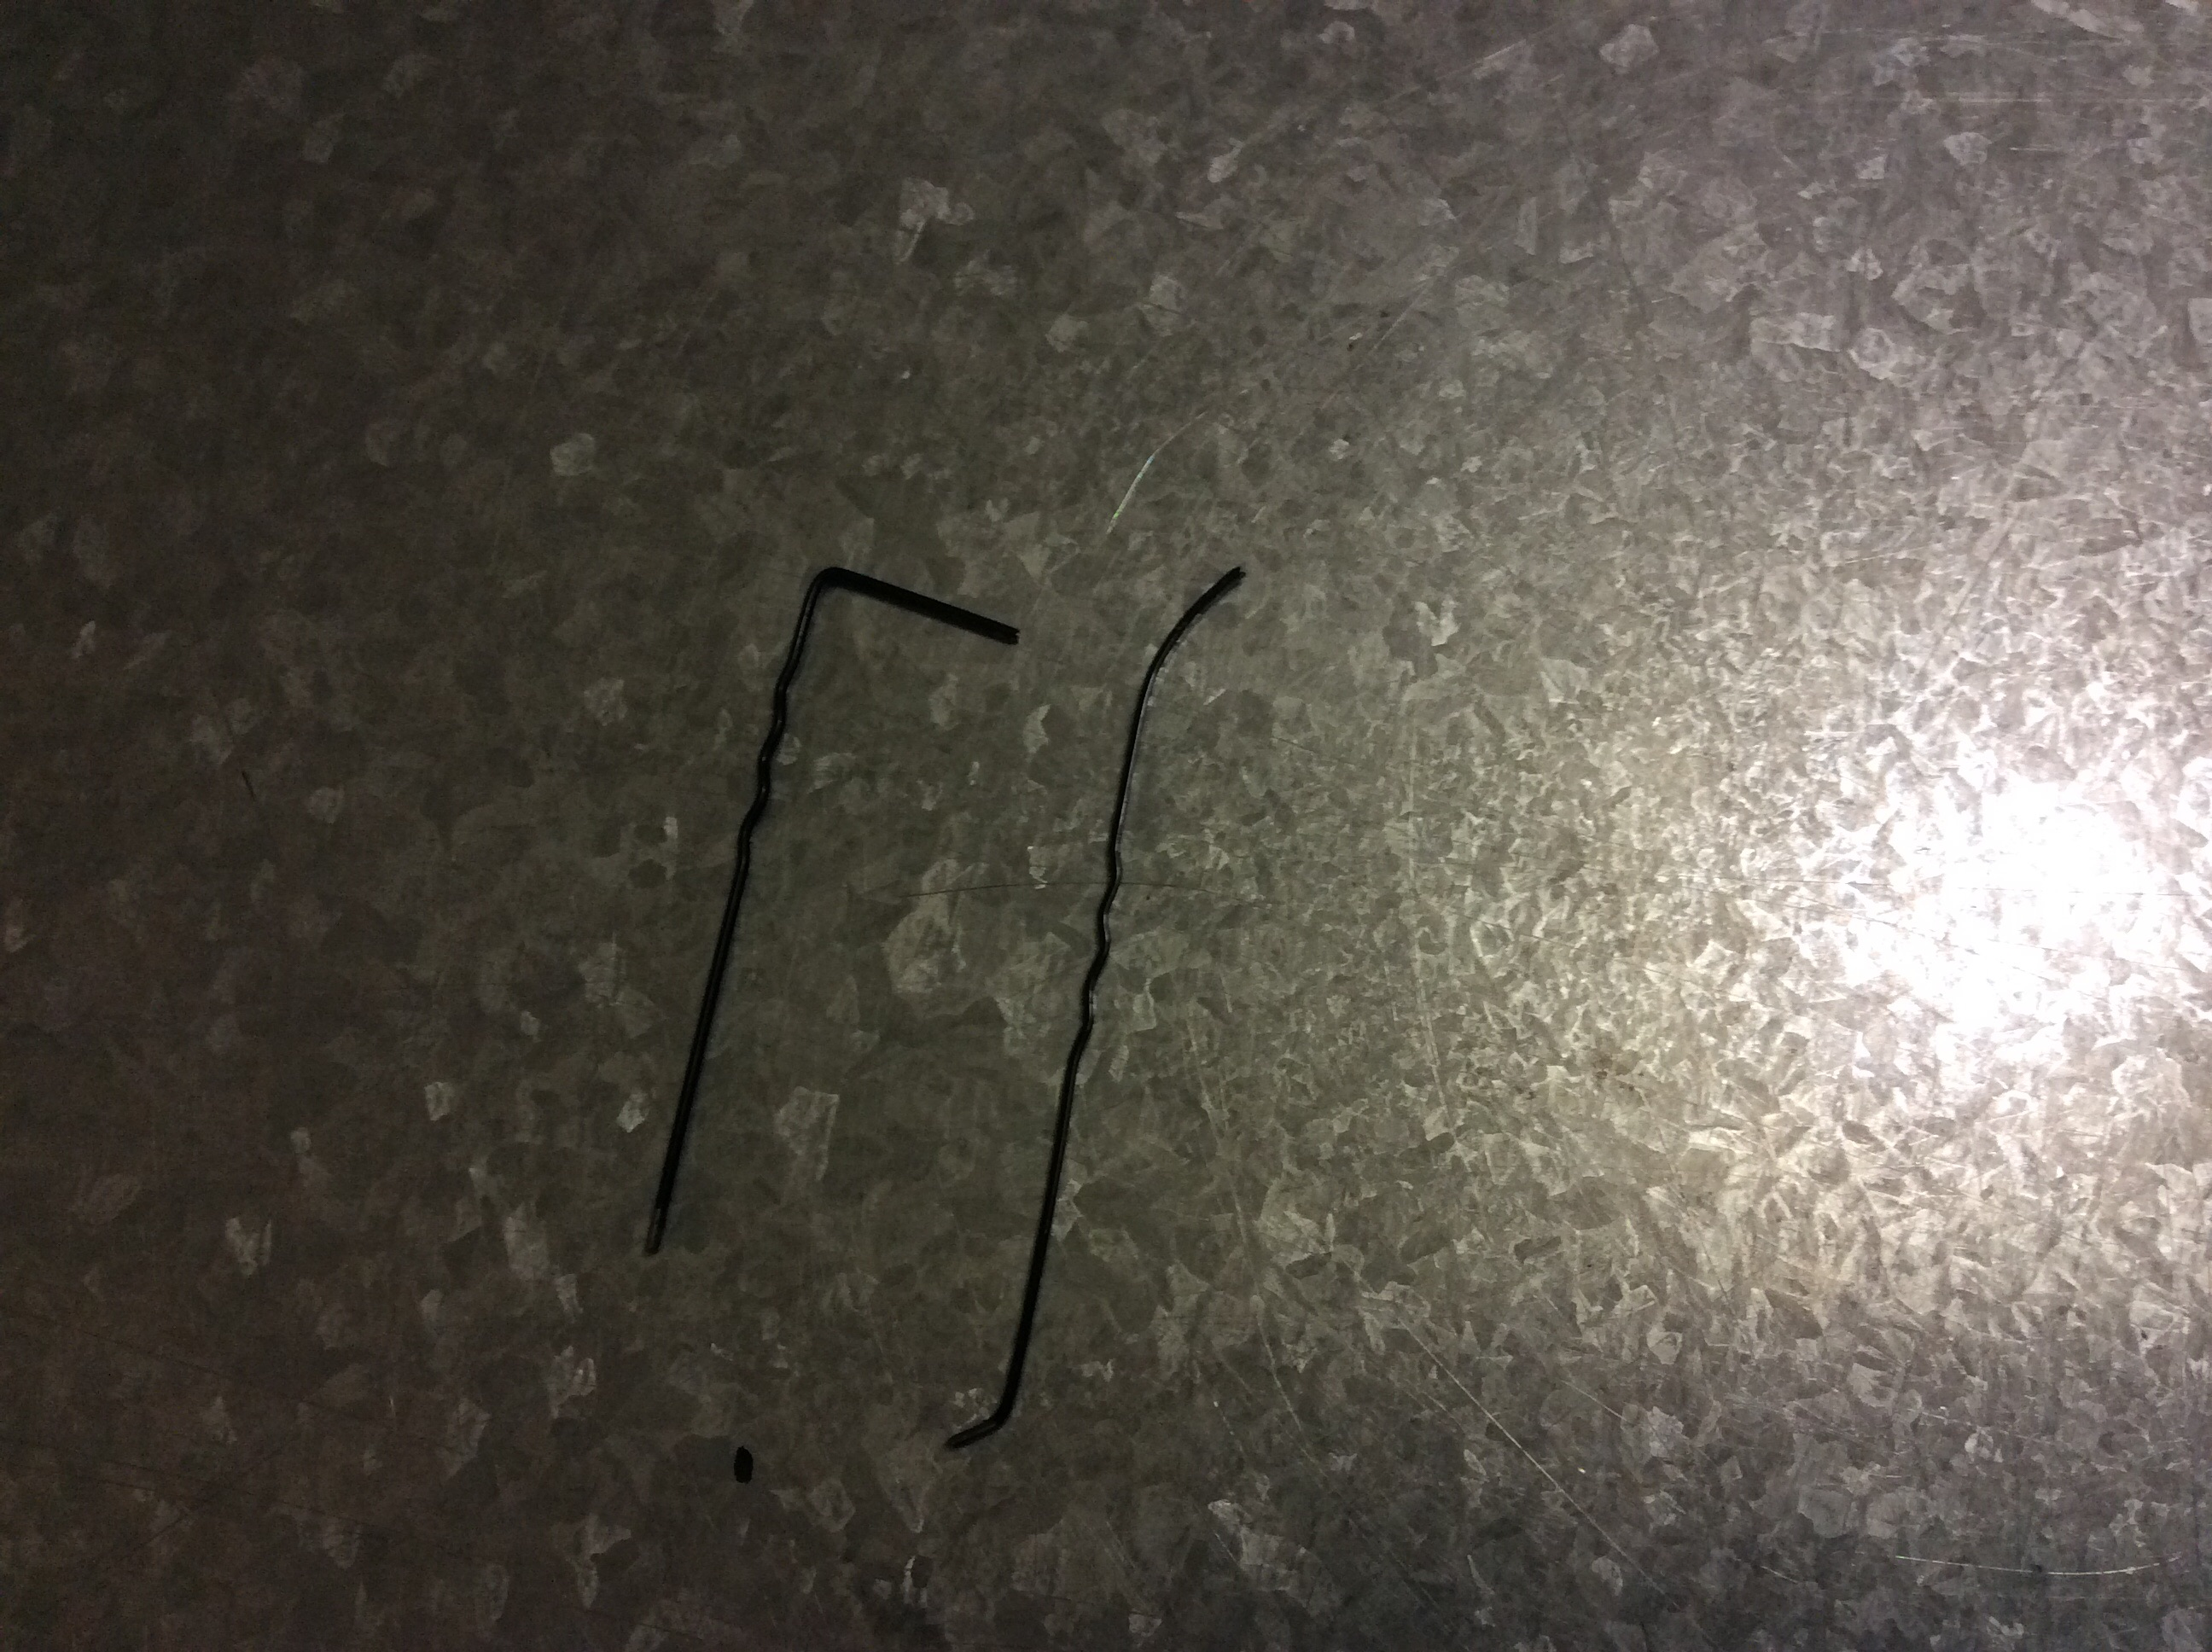 Picture of How to Pick a Lock With a Hair Pin